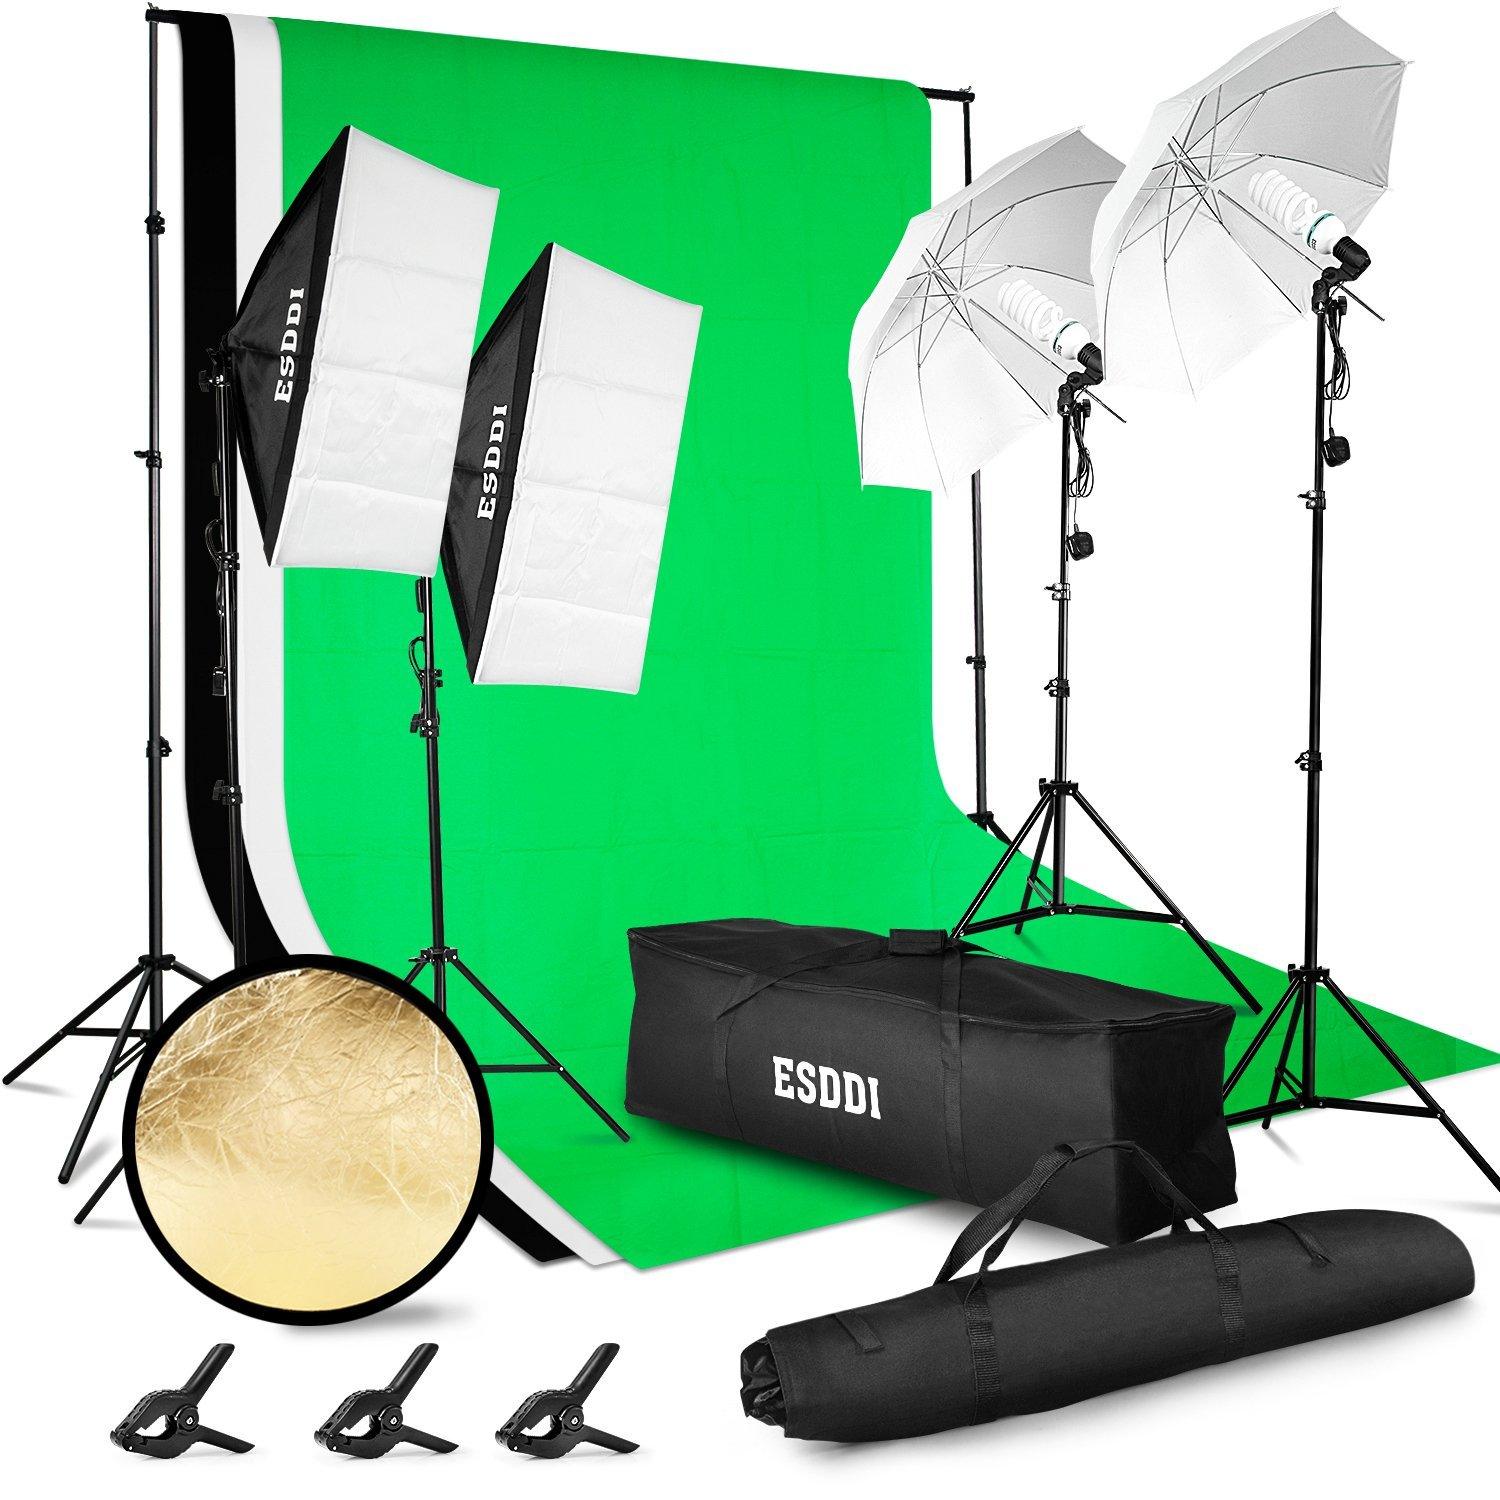 Kit di Illuminazione per fotografia e video ESDDI in offerta con coupon speciale